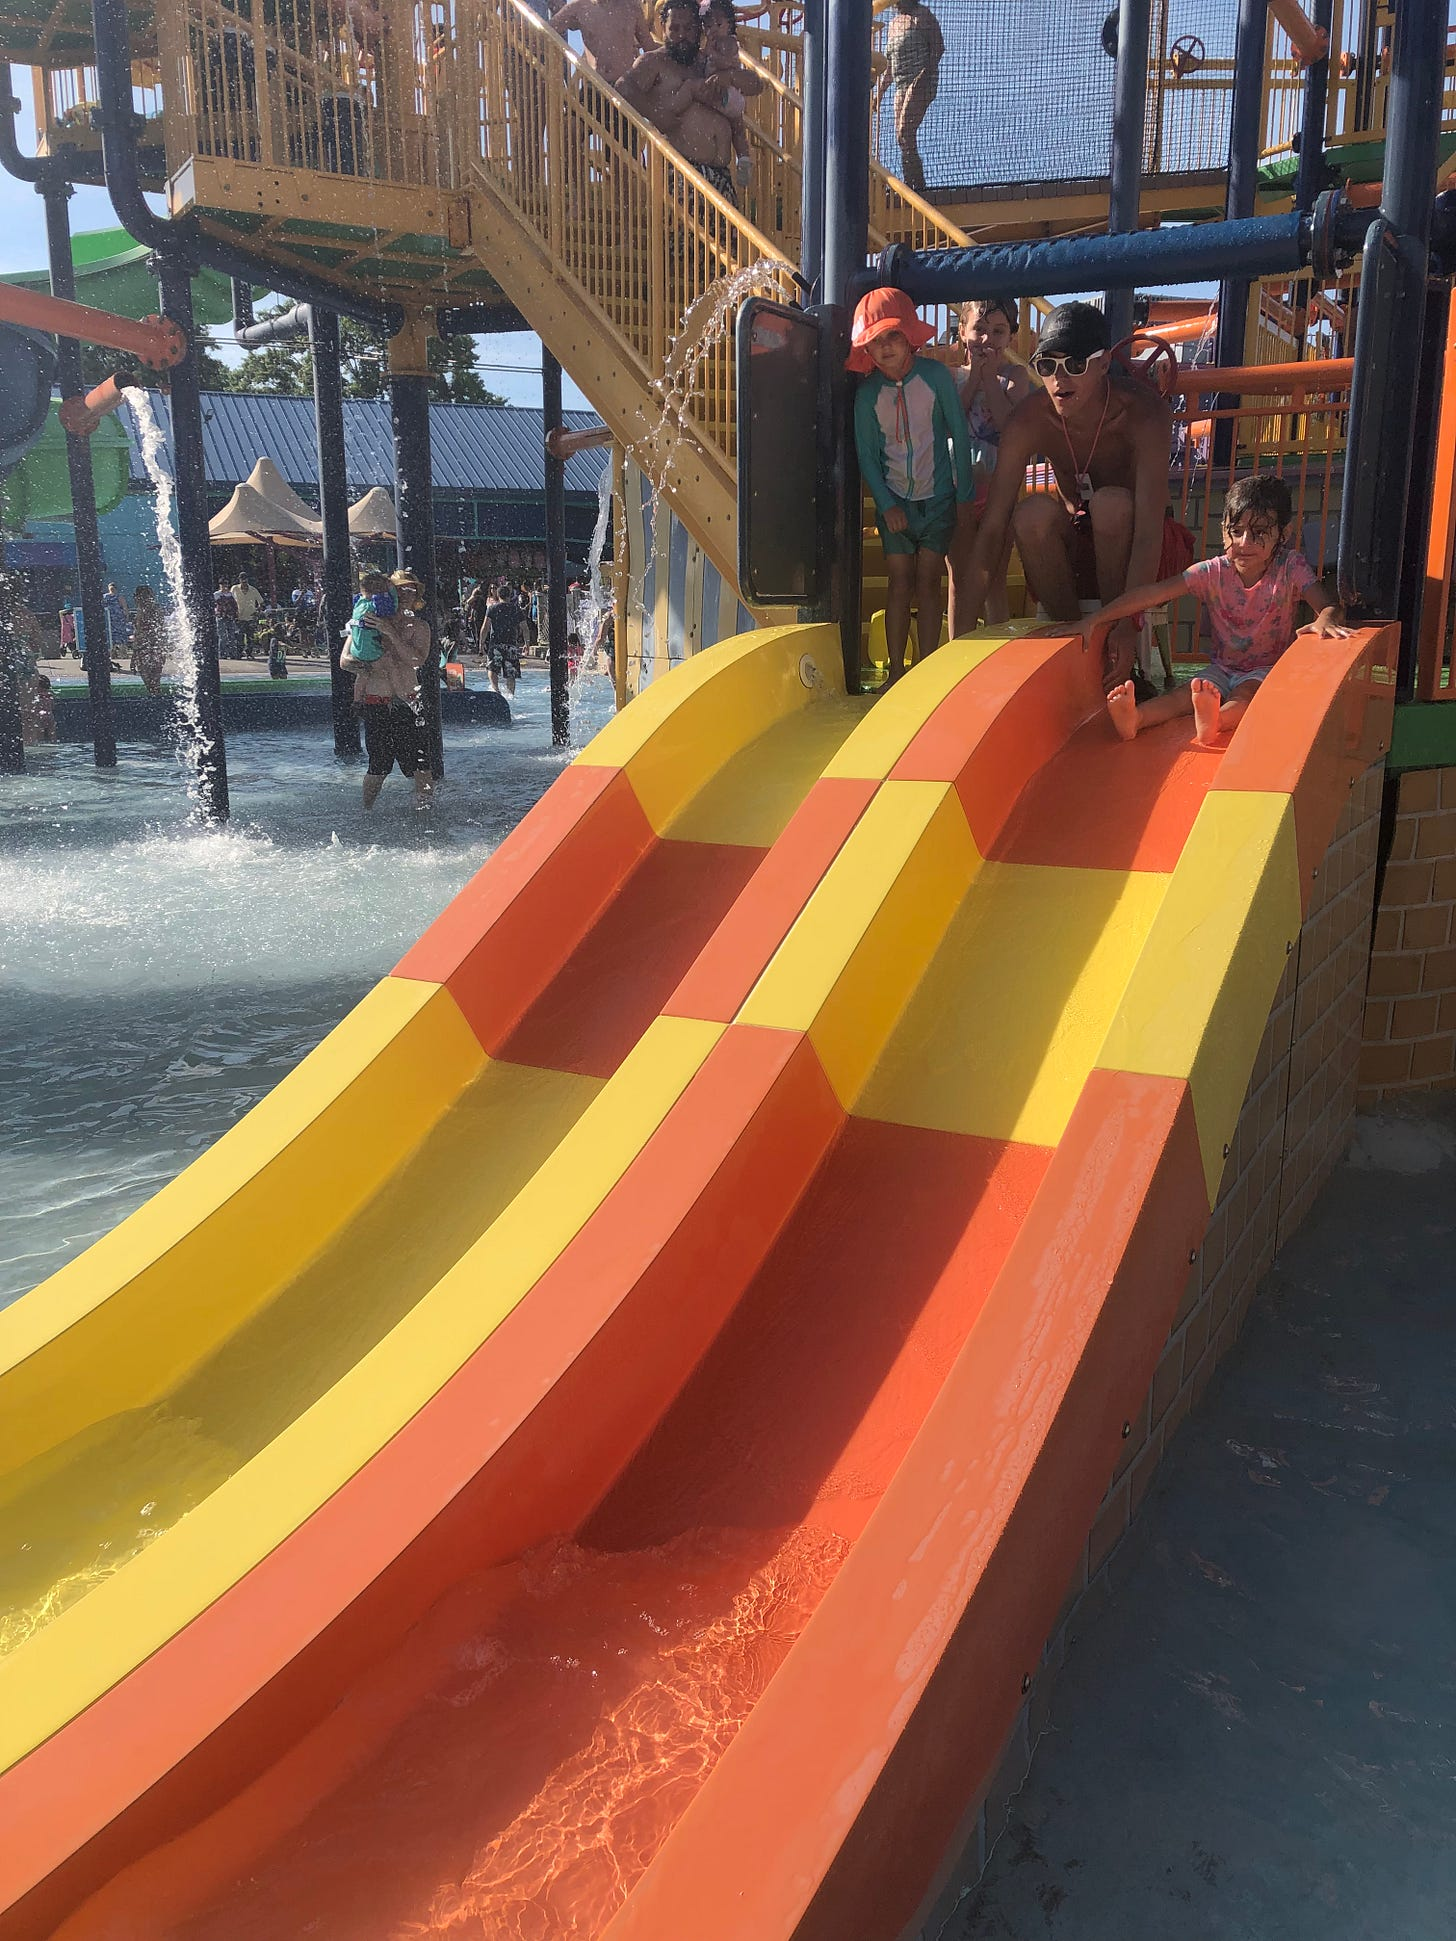 Photo shows a climbing structure with a small side-by-side water slide with two kids and a lifeguard.